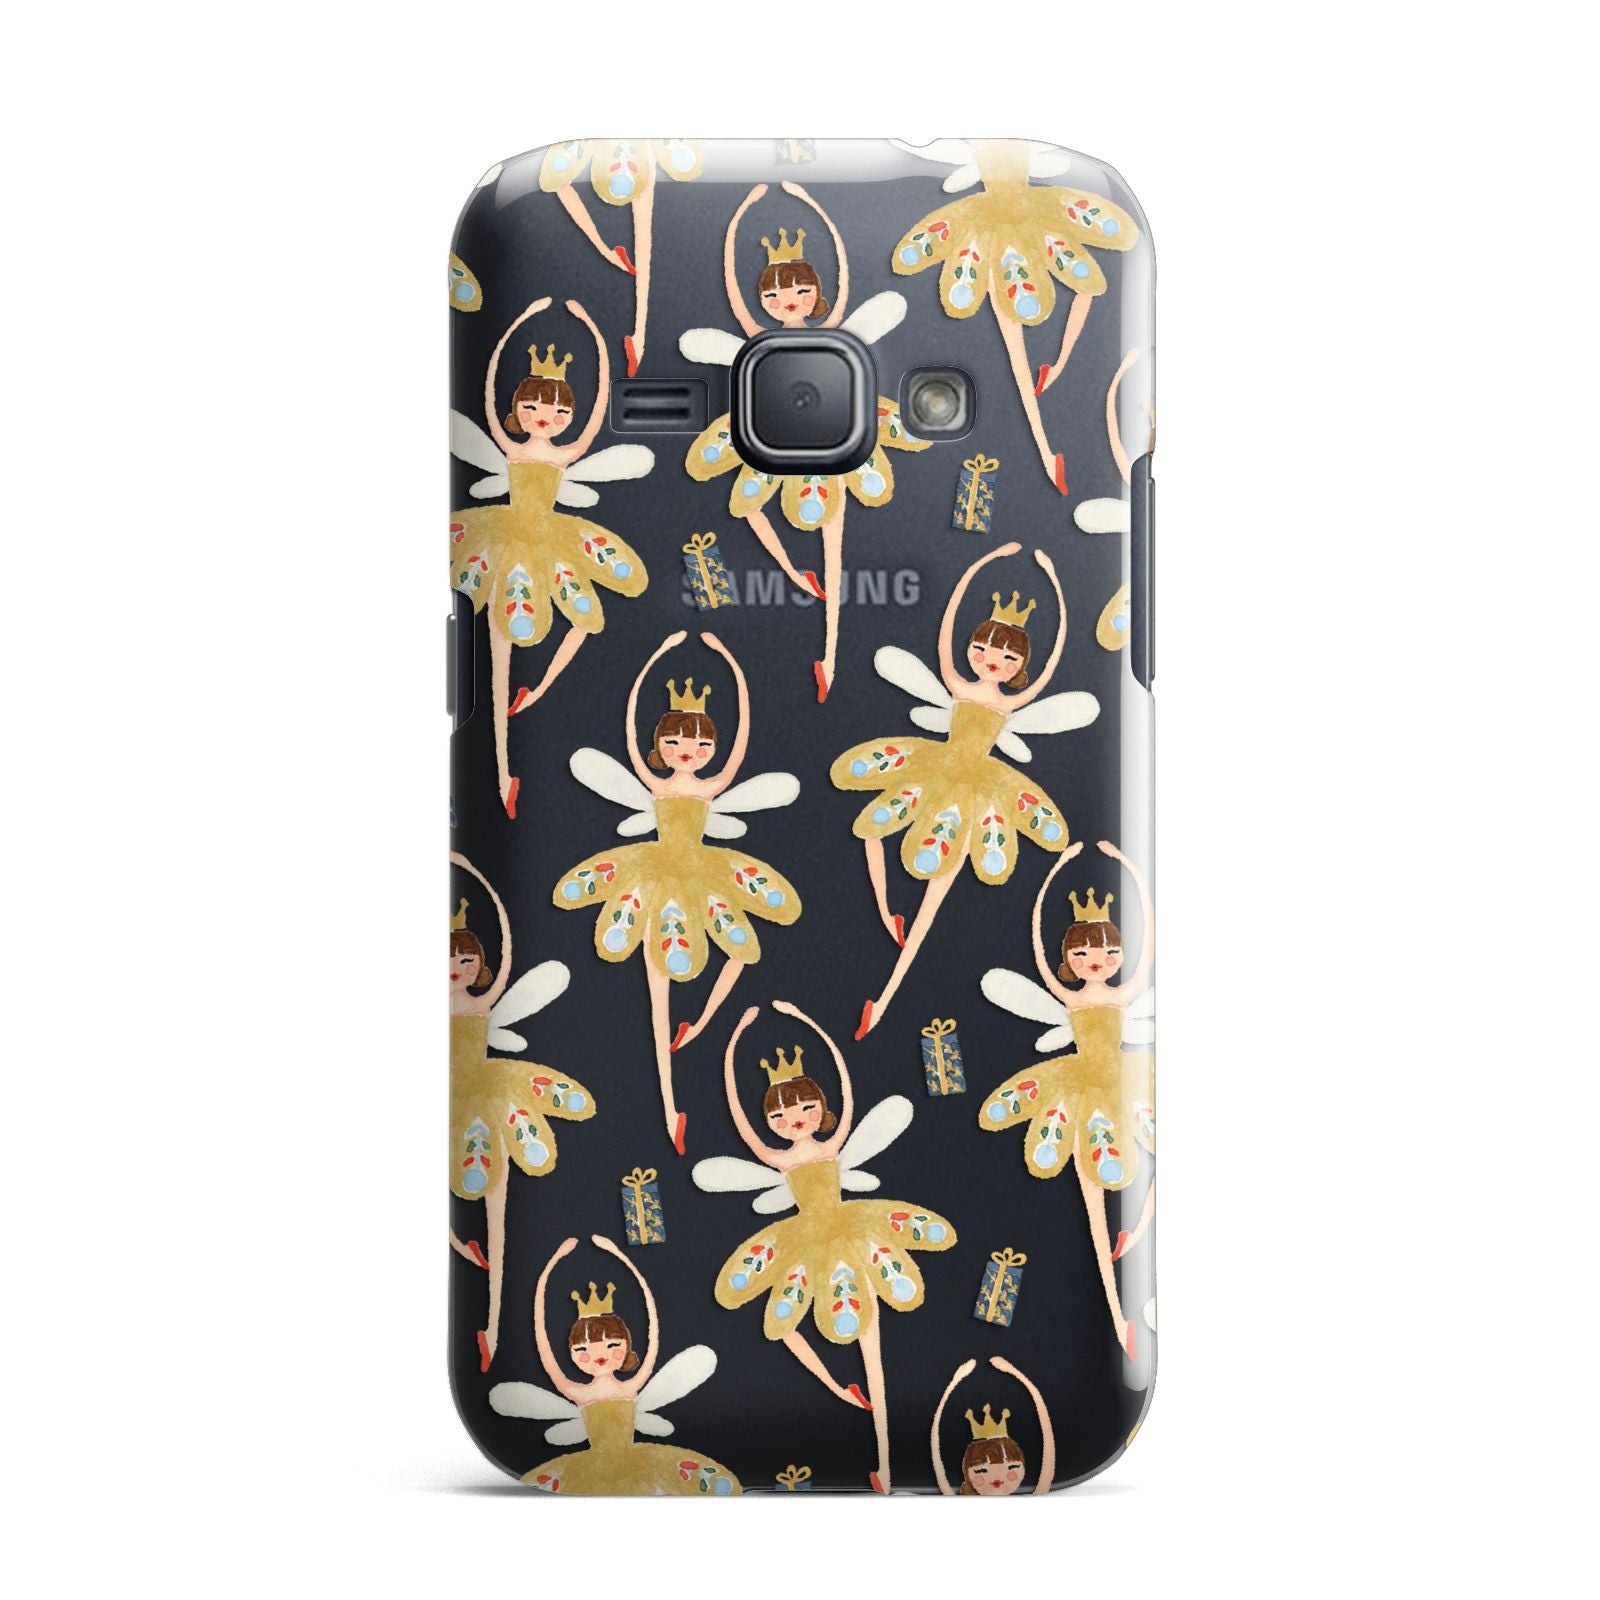 Dancing ballerina princess Samsung Galaxy J1 2016 Case